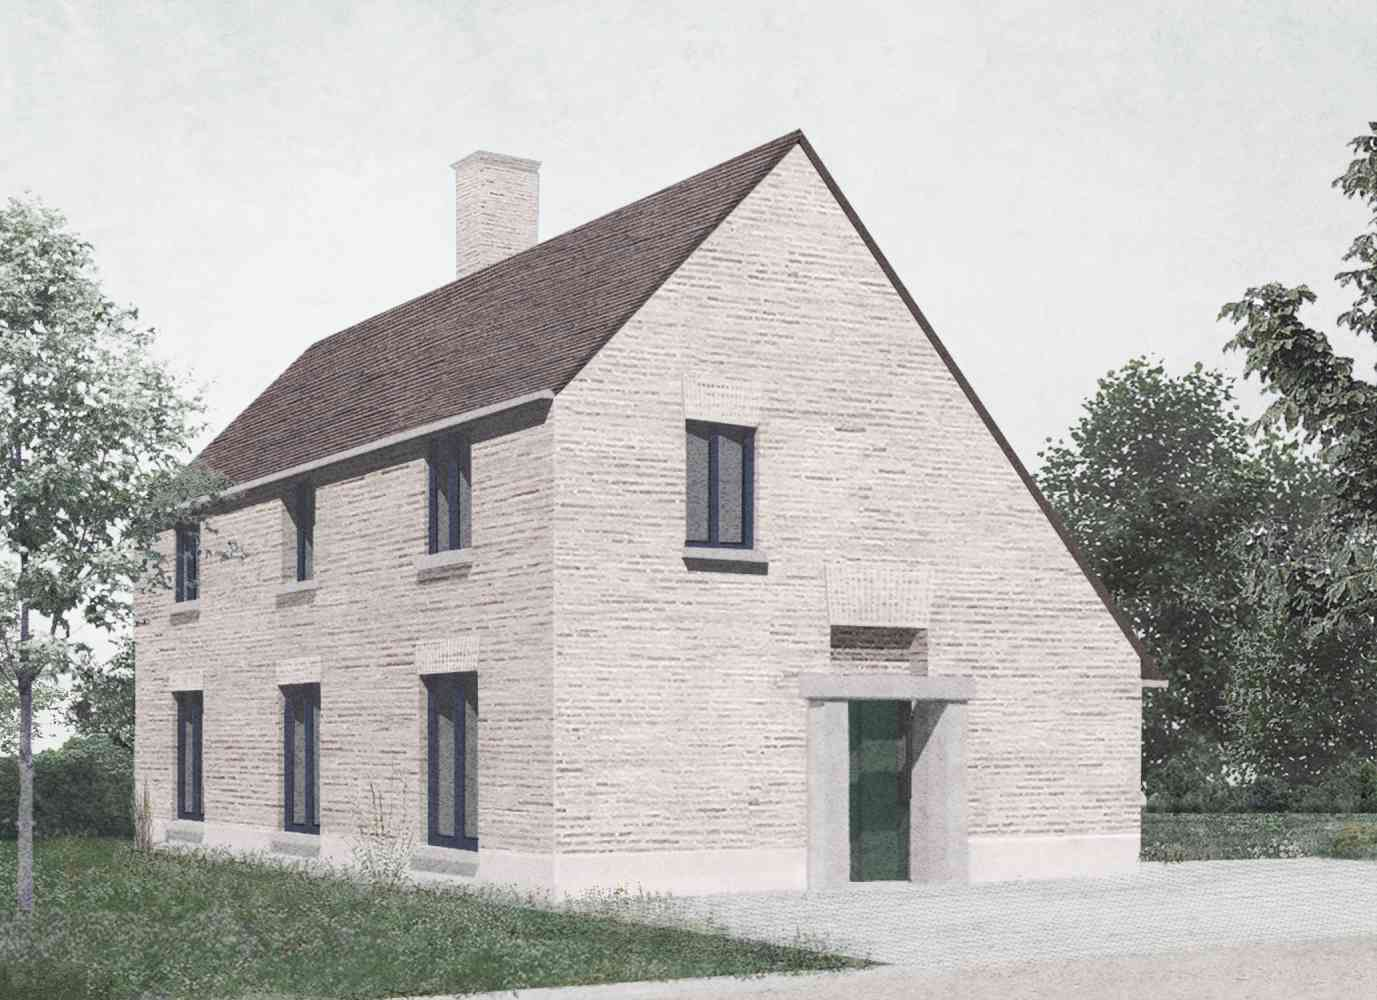 Village Development, 2021 - Eight new houses on a village edge site in Cambridgeshire. Planning approval granted 2019, construction 2021.